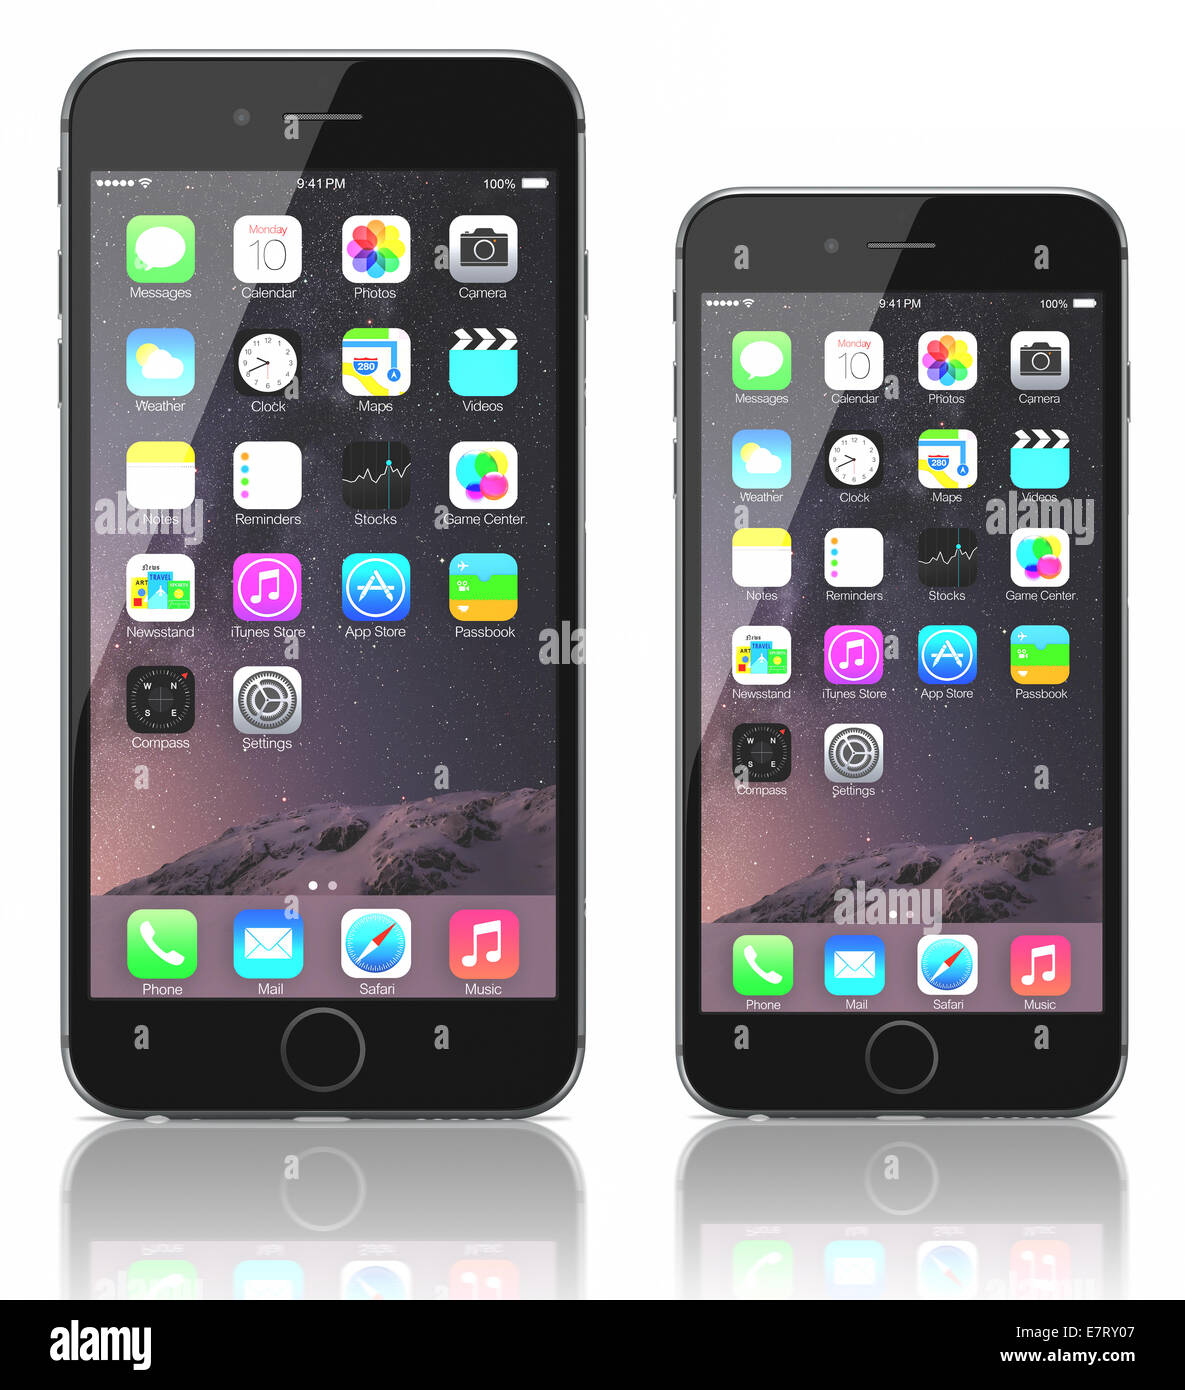 apple space gray iphone 6 plus and iphone 6 showing the home screen stock photo royalty free. Black Bedroom Furniture Sets. Home Design Ideas